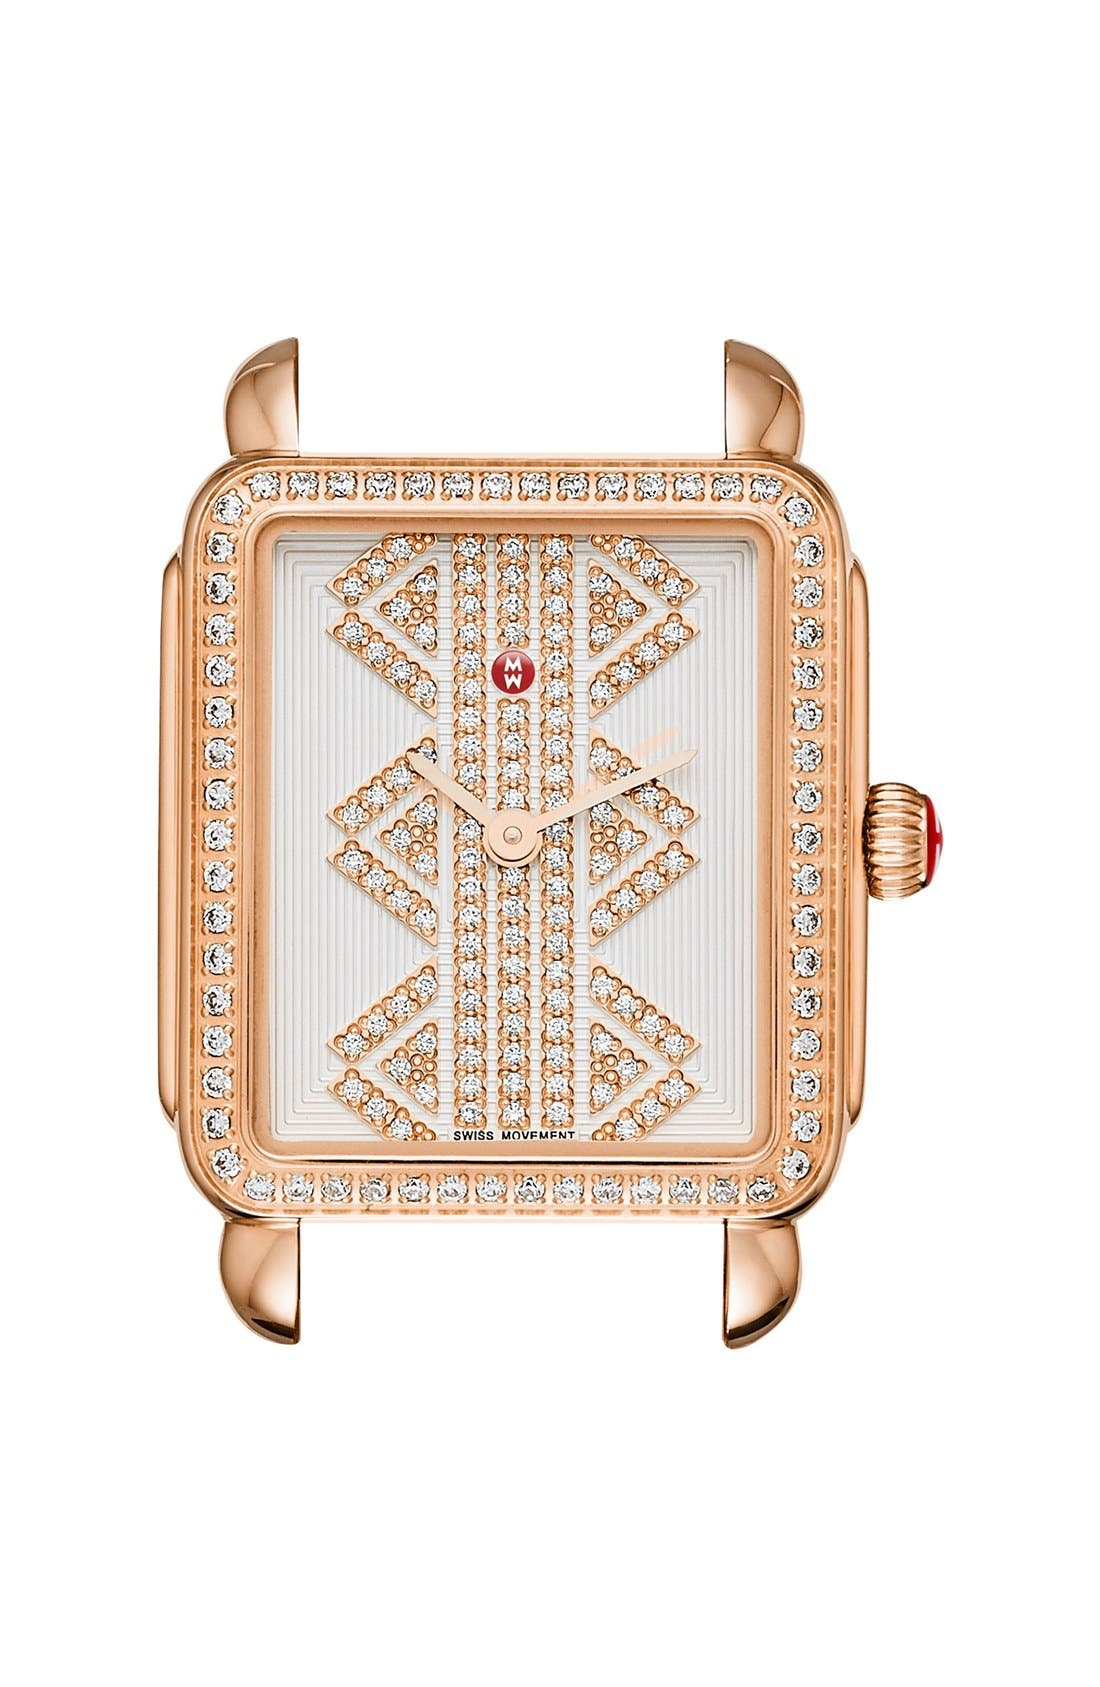 Deco II Mid Diamond Dial Watch Case, 26mm x 28mm,                         Main,                         color, Rose Gold